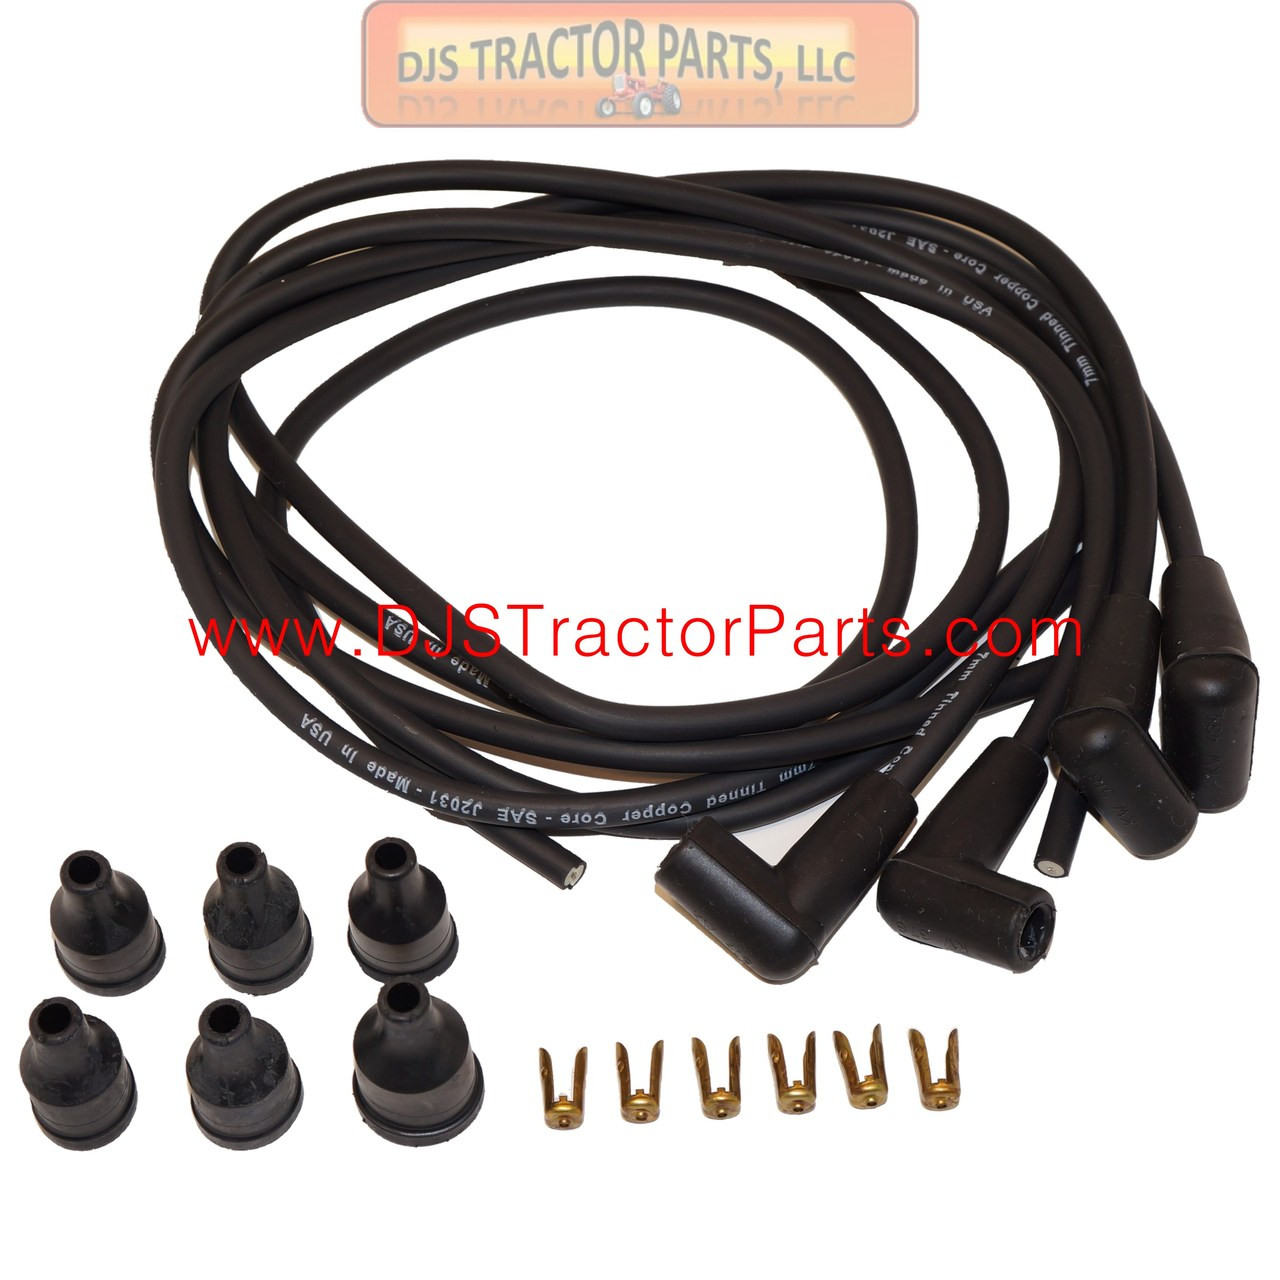 4 Cylinder Gas Tractor Spark plug wire set USA Made Copper Core wires